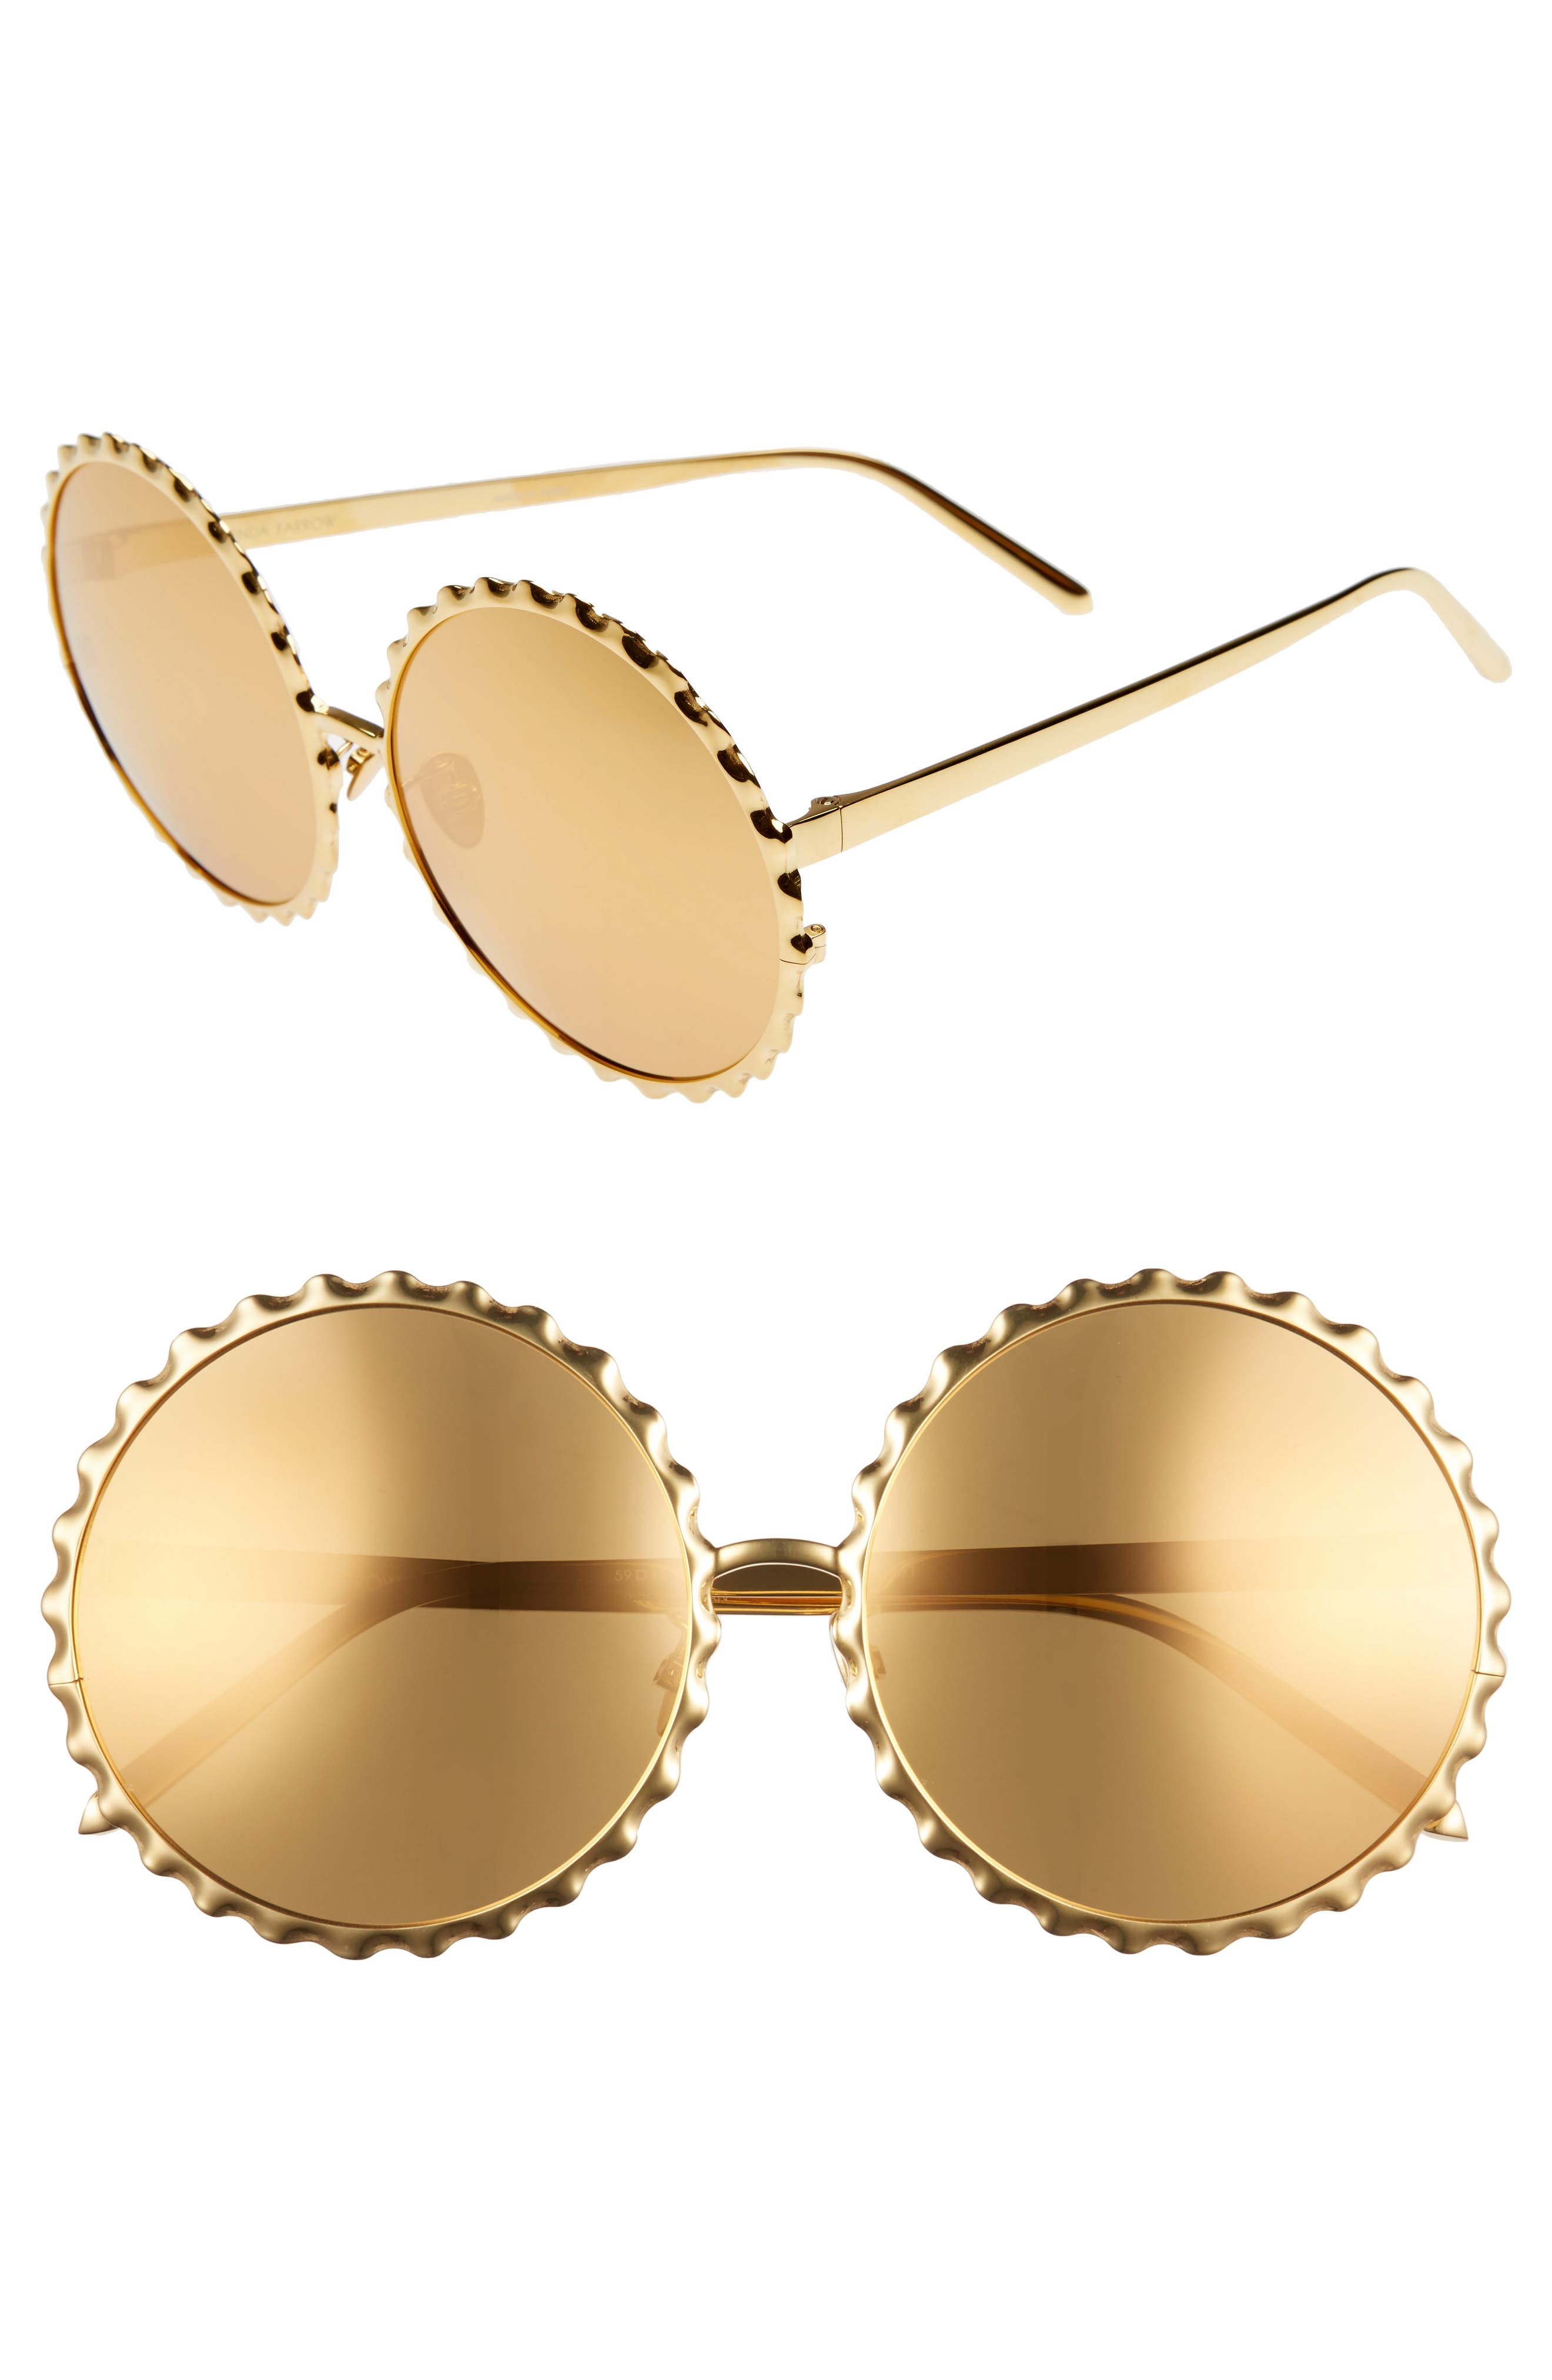 59mm Mirrored 18 Karat Gold Trim Round Sunglasses,                             Main thumbnail 1, color,                             710